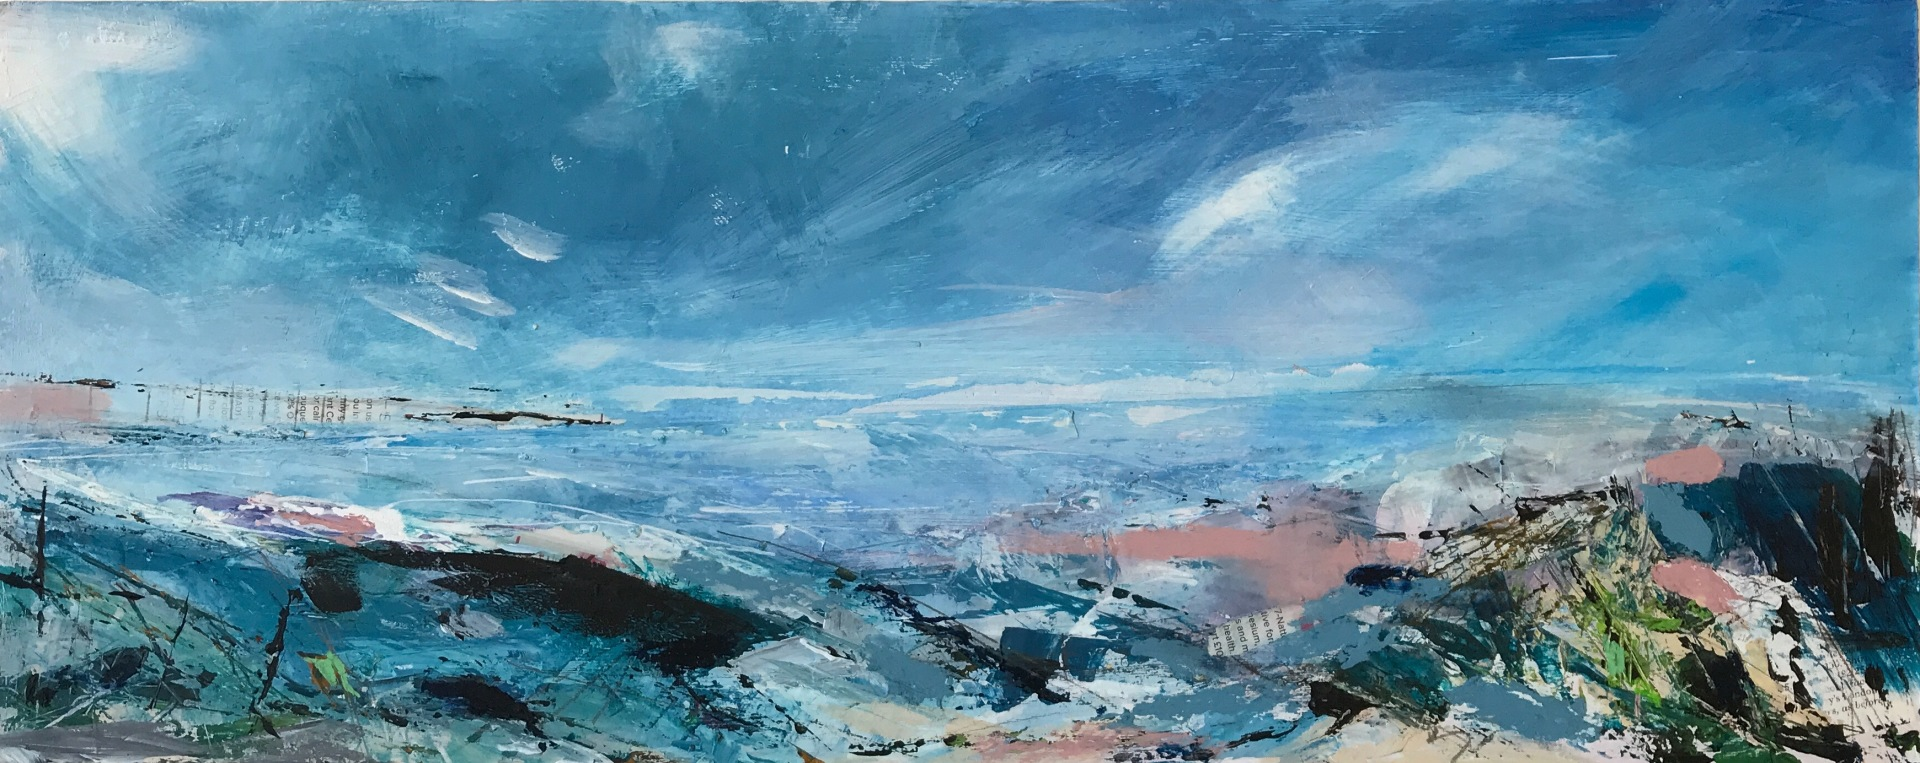 Towards the Light 51 x 20cms - SOLD